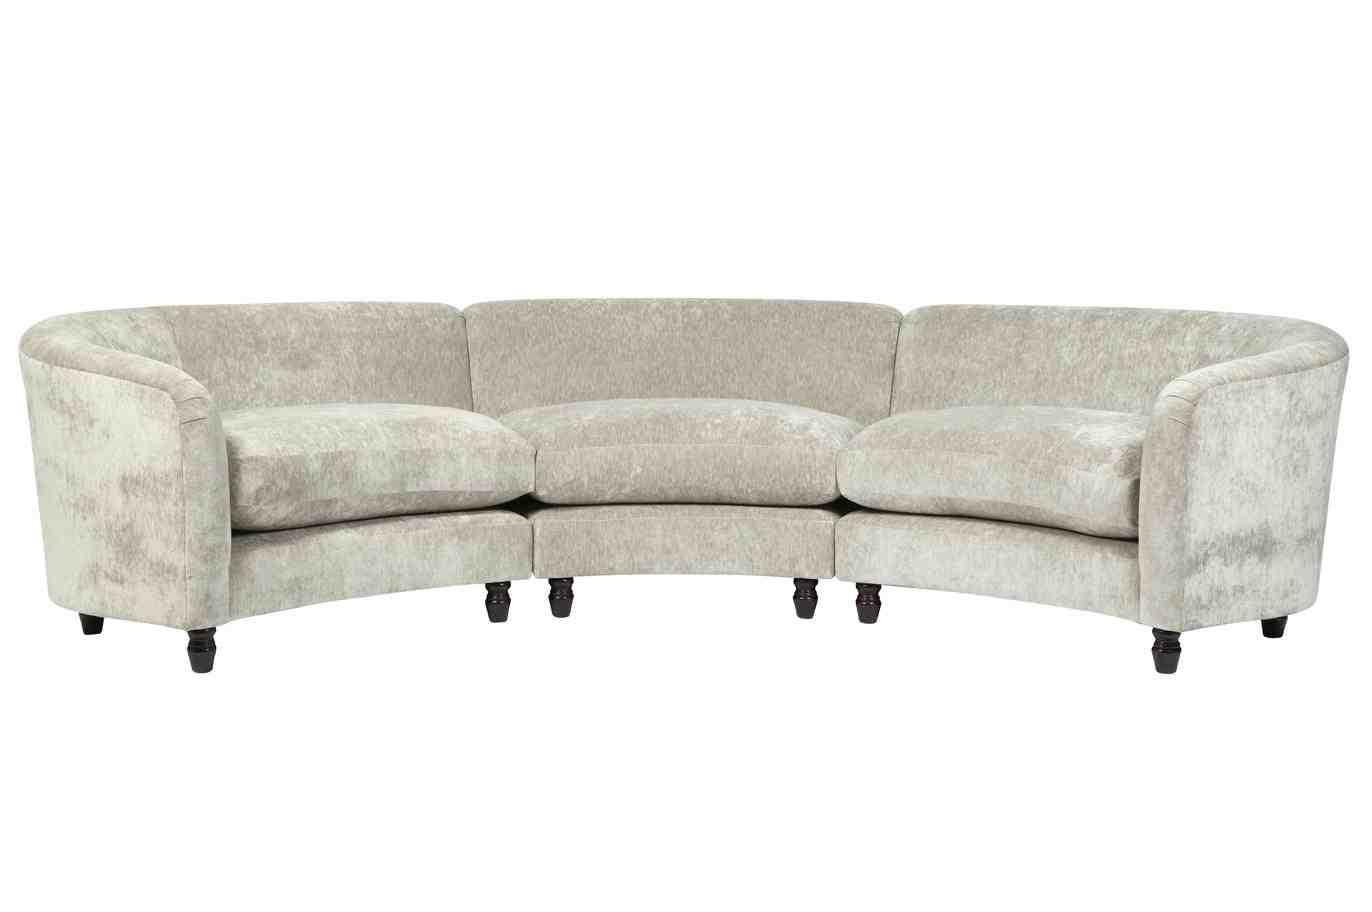 Small Curved Sectional Sofa Home Furniture Design, Sectional Sofas In Small Curved Sectional Sofas (Image 13 of 20)